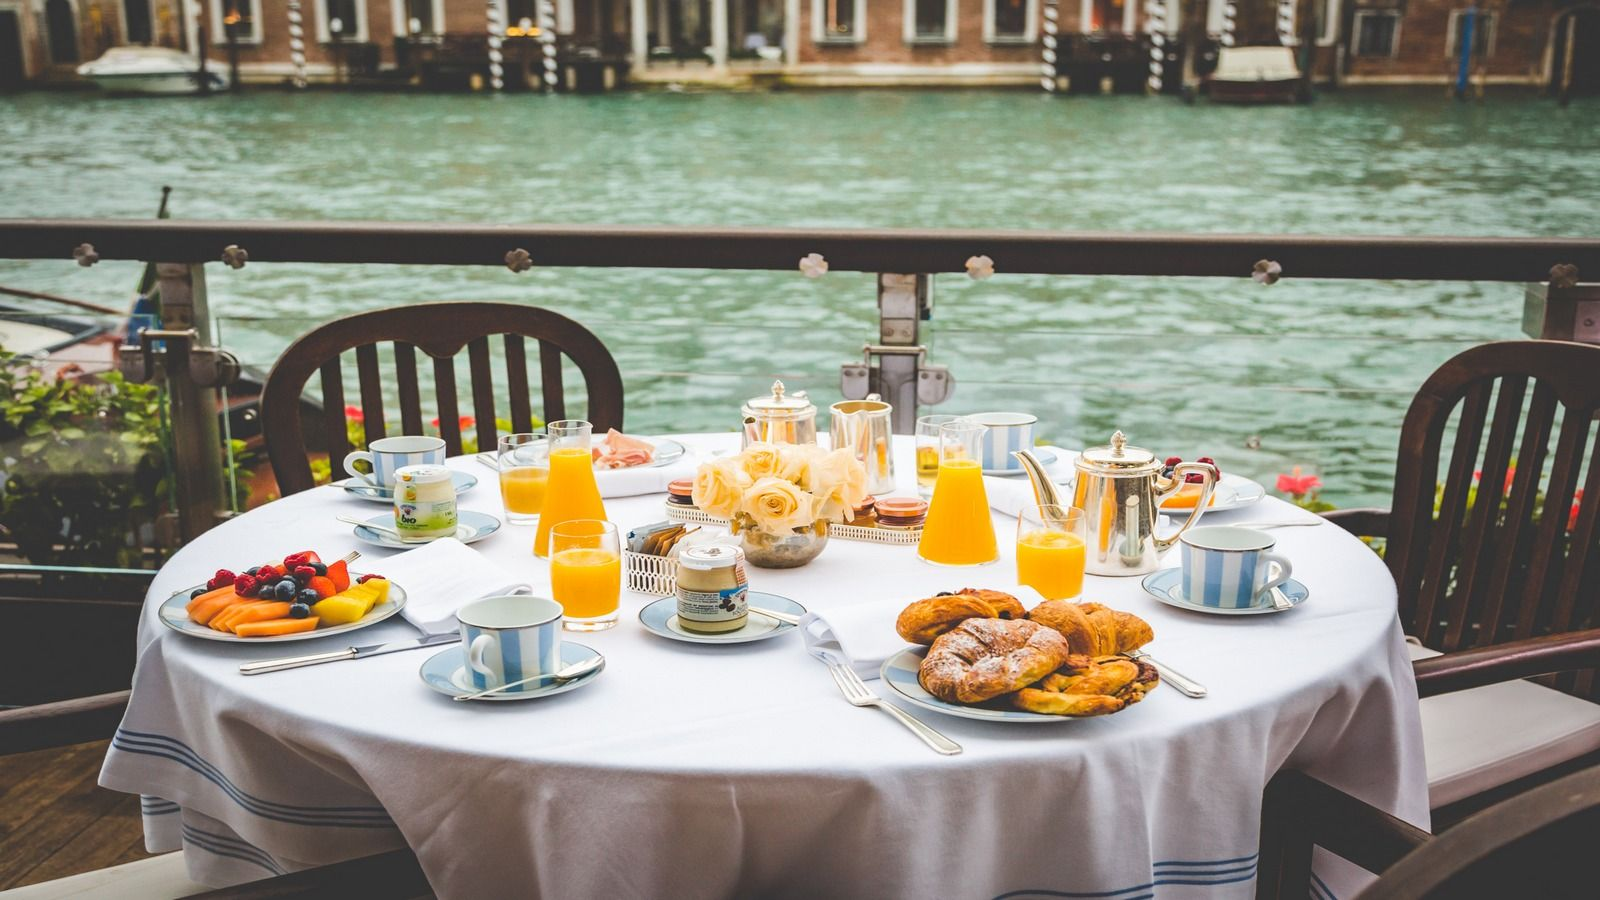 The Gritti Palace Breakfast